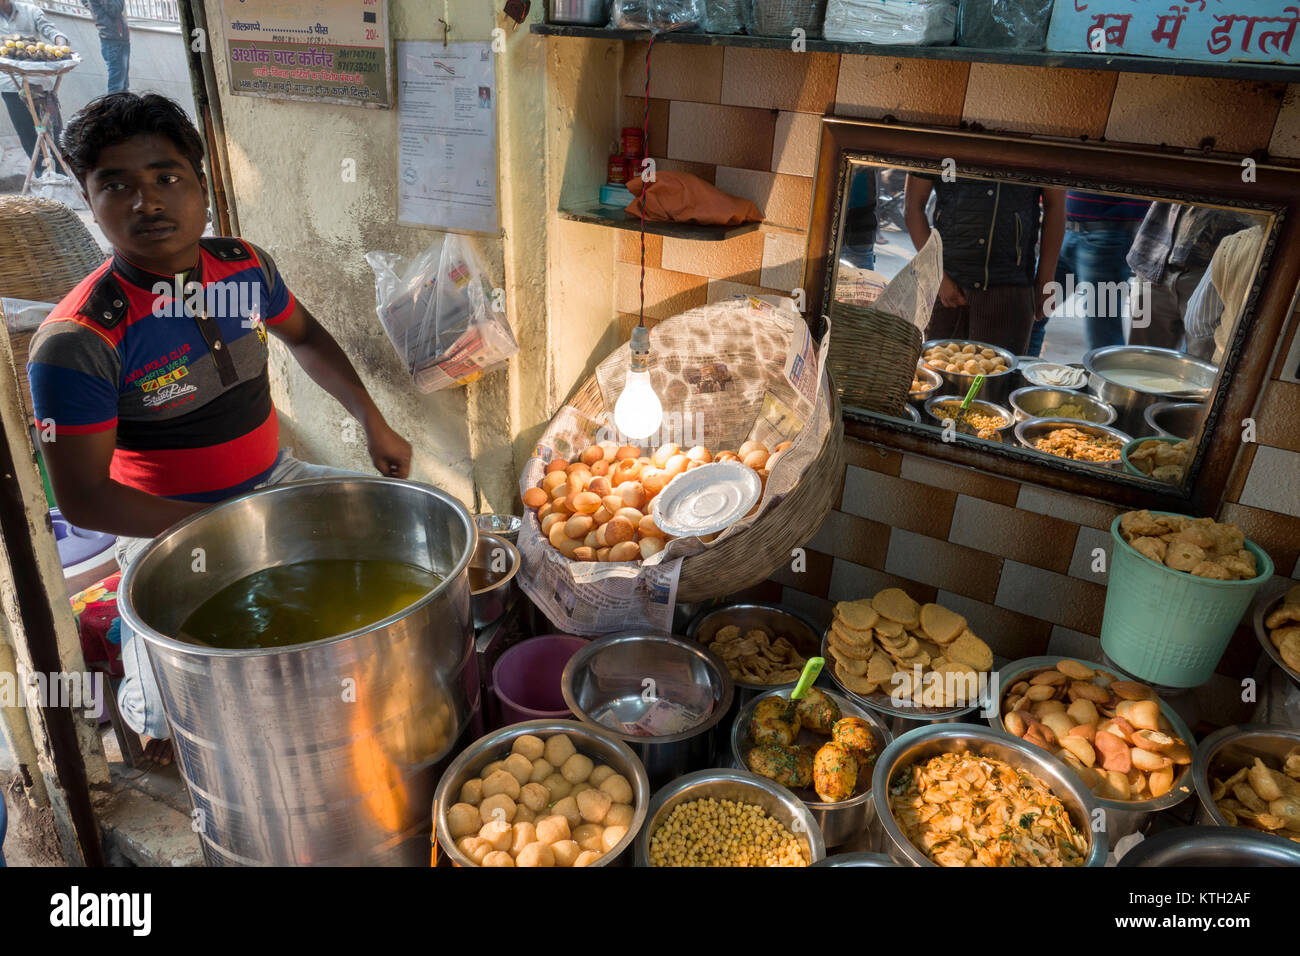 Man selling street food from stall in old Delhi, India - Stock Image